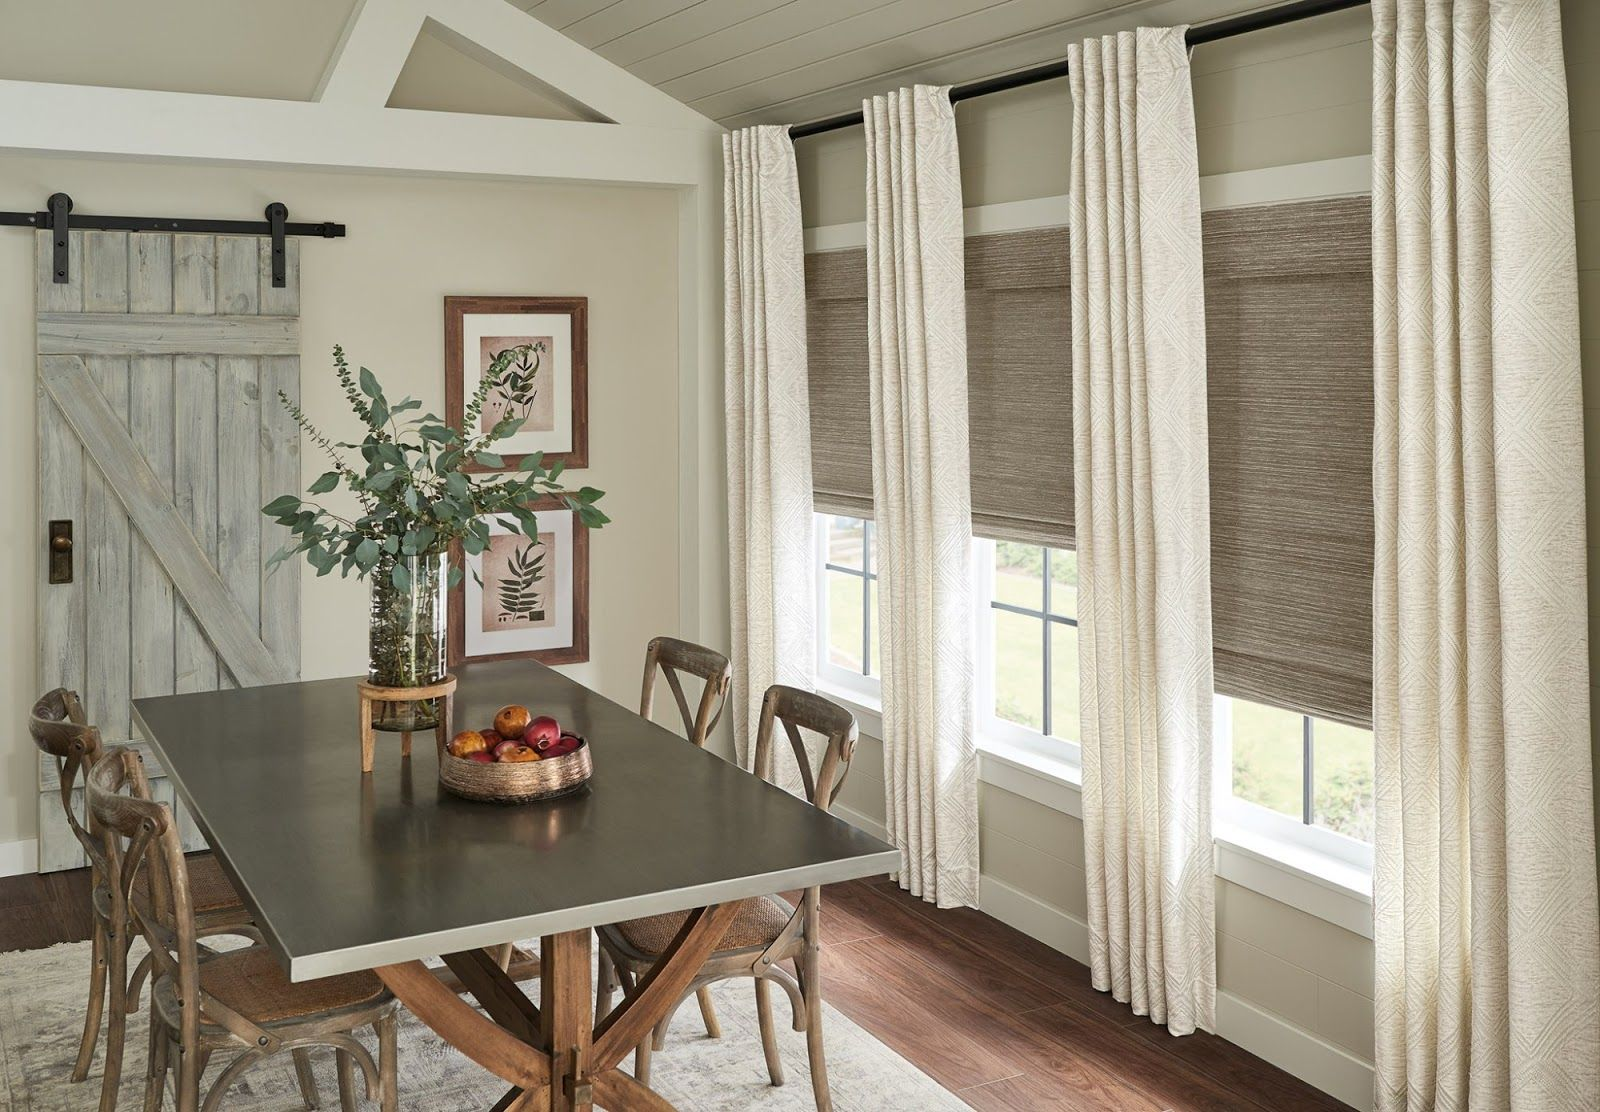 The Top 6 Dining Room Curtain Ideas For Your Home Curtains Up Blog Kwik Hang In 2021 Window Treatments Living Room Dining Room Curtains Dining Room Windows